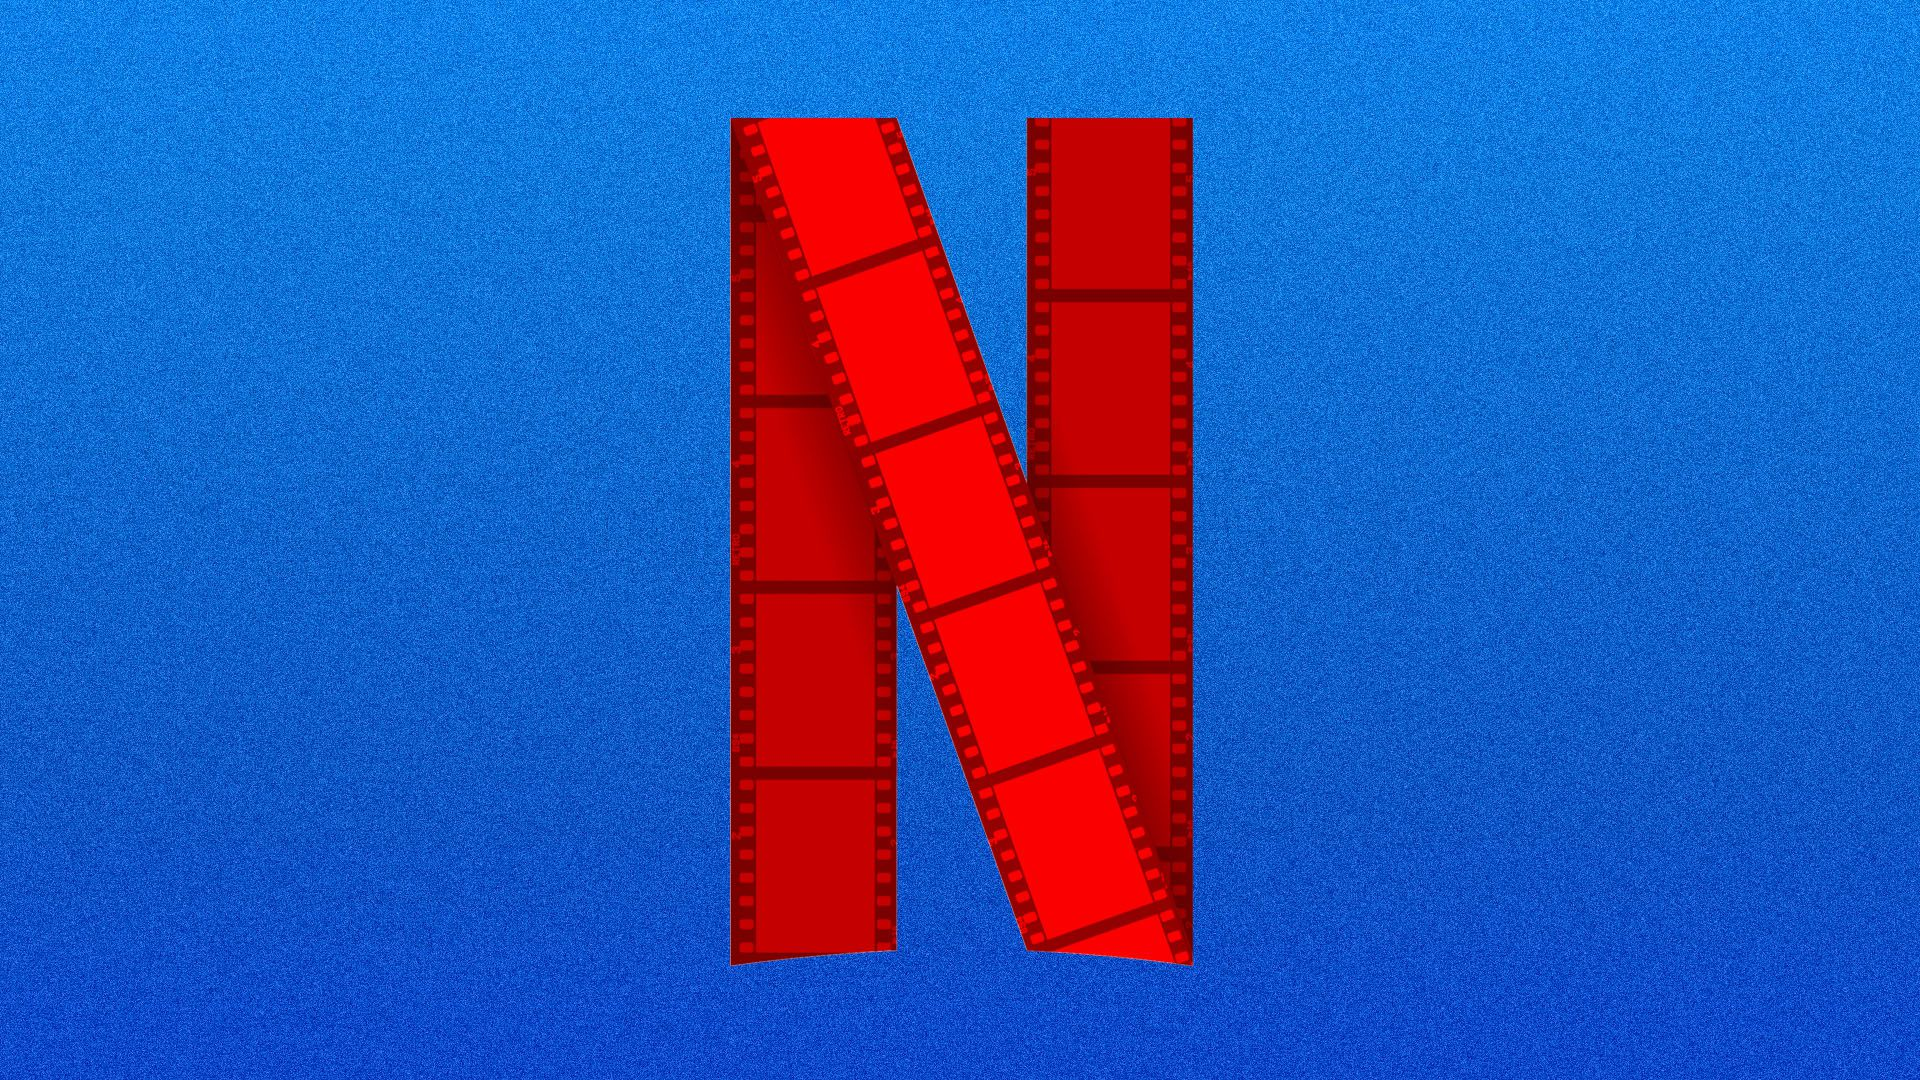 This illustration shows the Netflix logo made out of movie reel